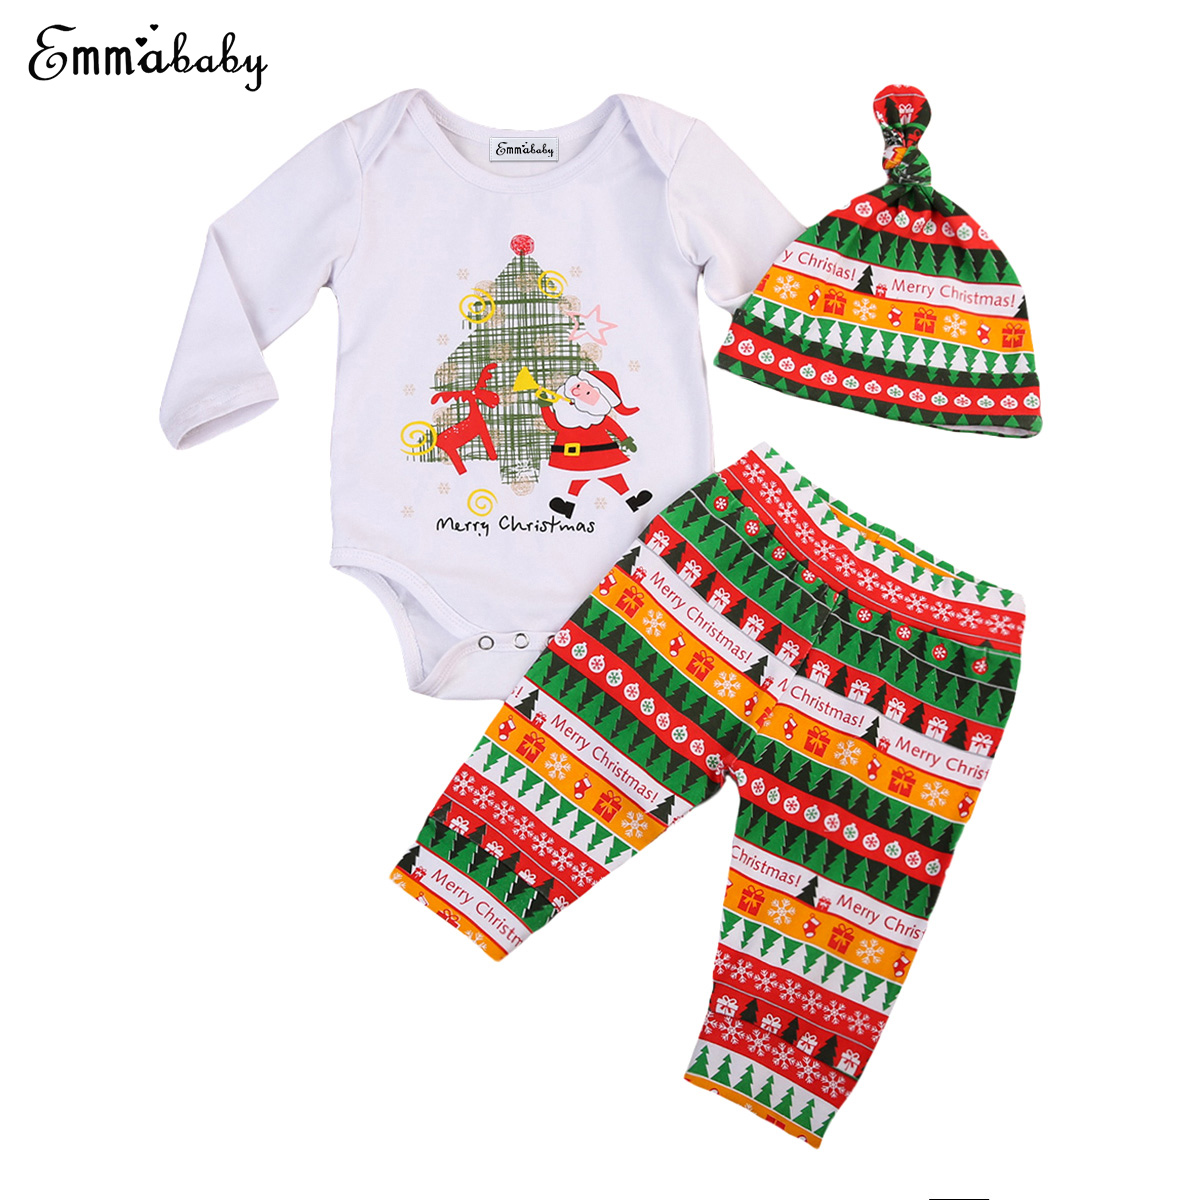 2017 Newest Arrivals Xmas Clothes Set Newborn Infant Toddler Baby Boys Girls Santa Romper Long Pants Outfit Casual Clothes Set puseky 2017 infant romper baby boys girls jumpsuit newborn bebe clothing hooded toddler baby clothes cute panda romper costumes